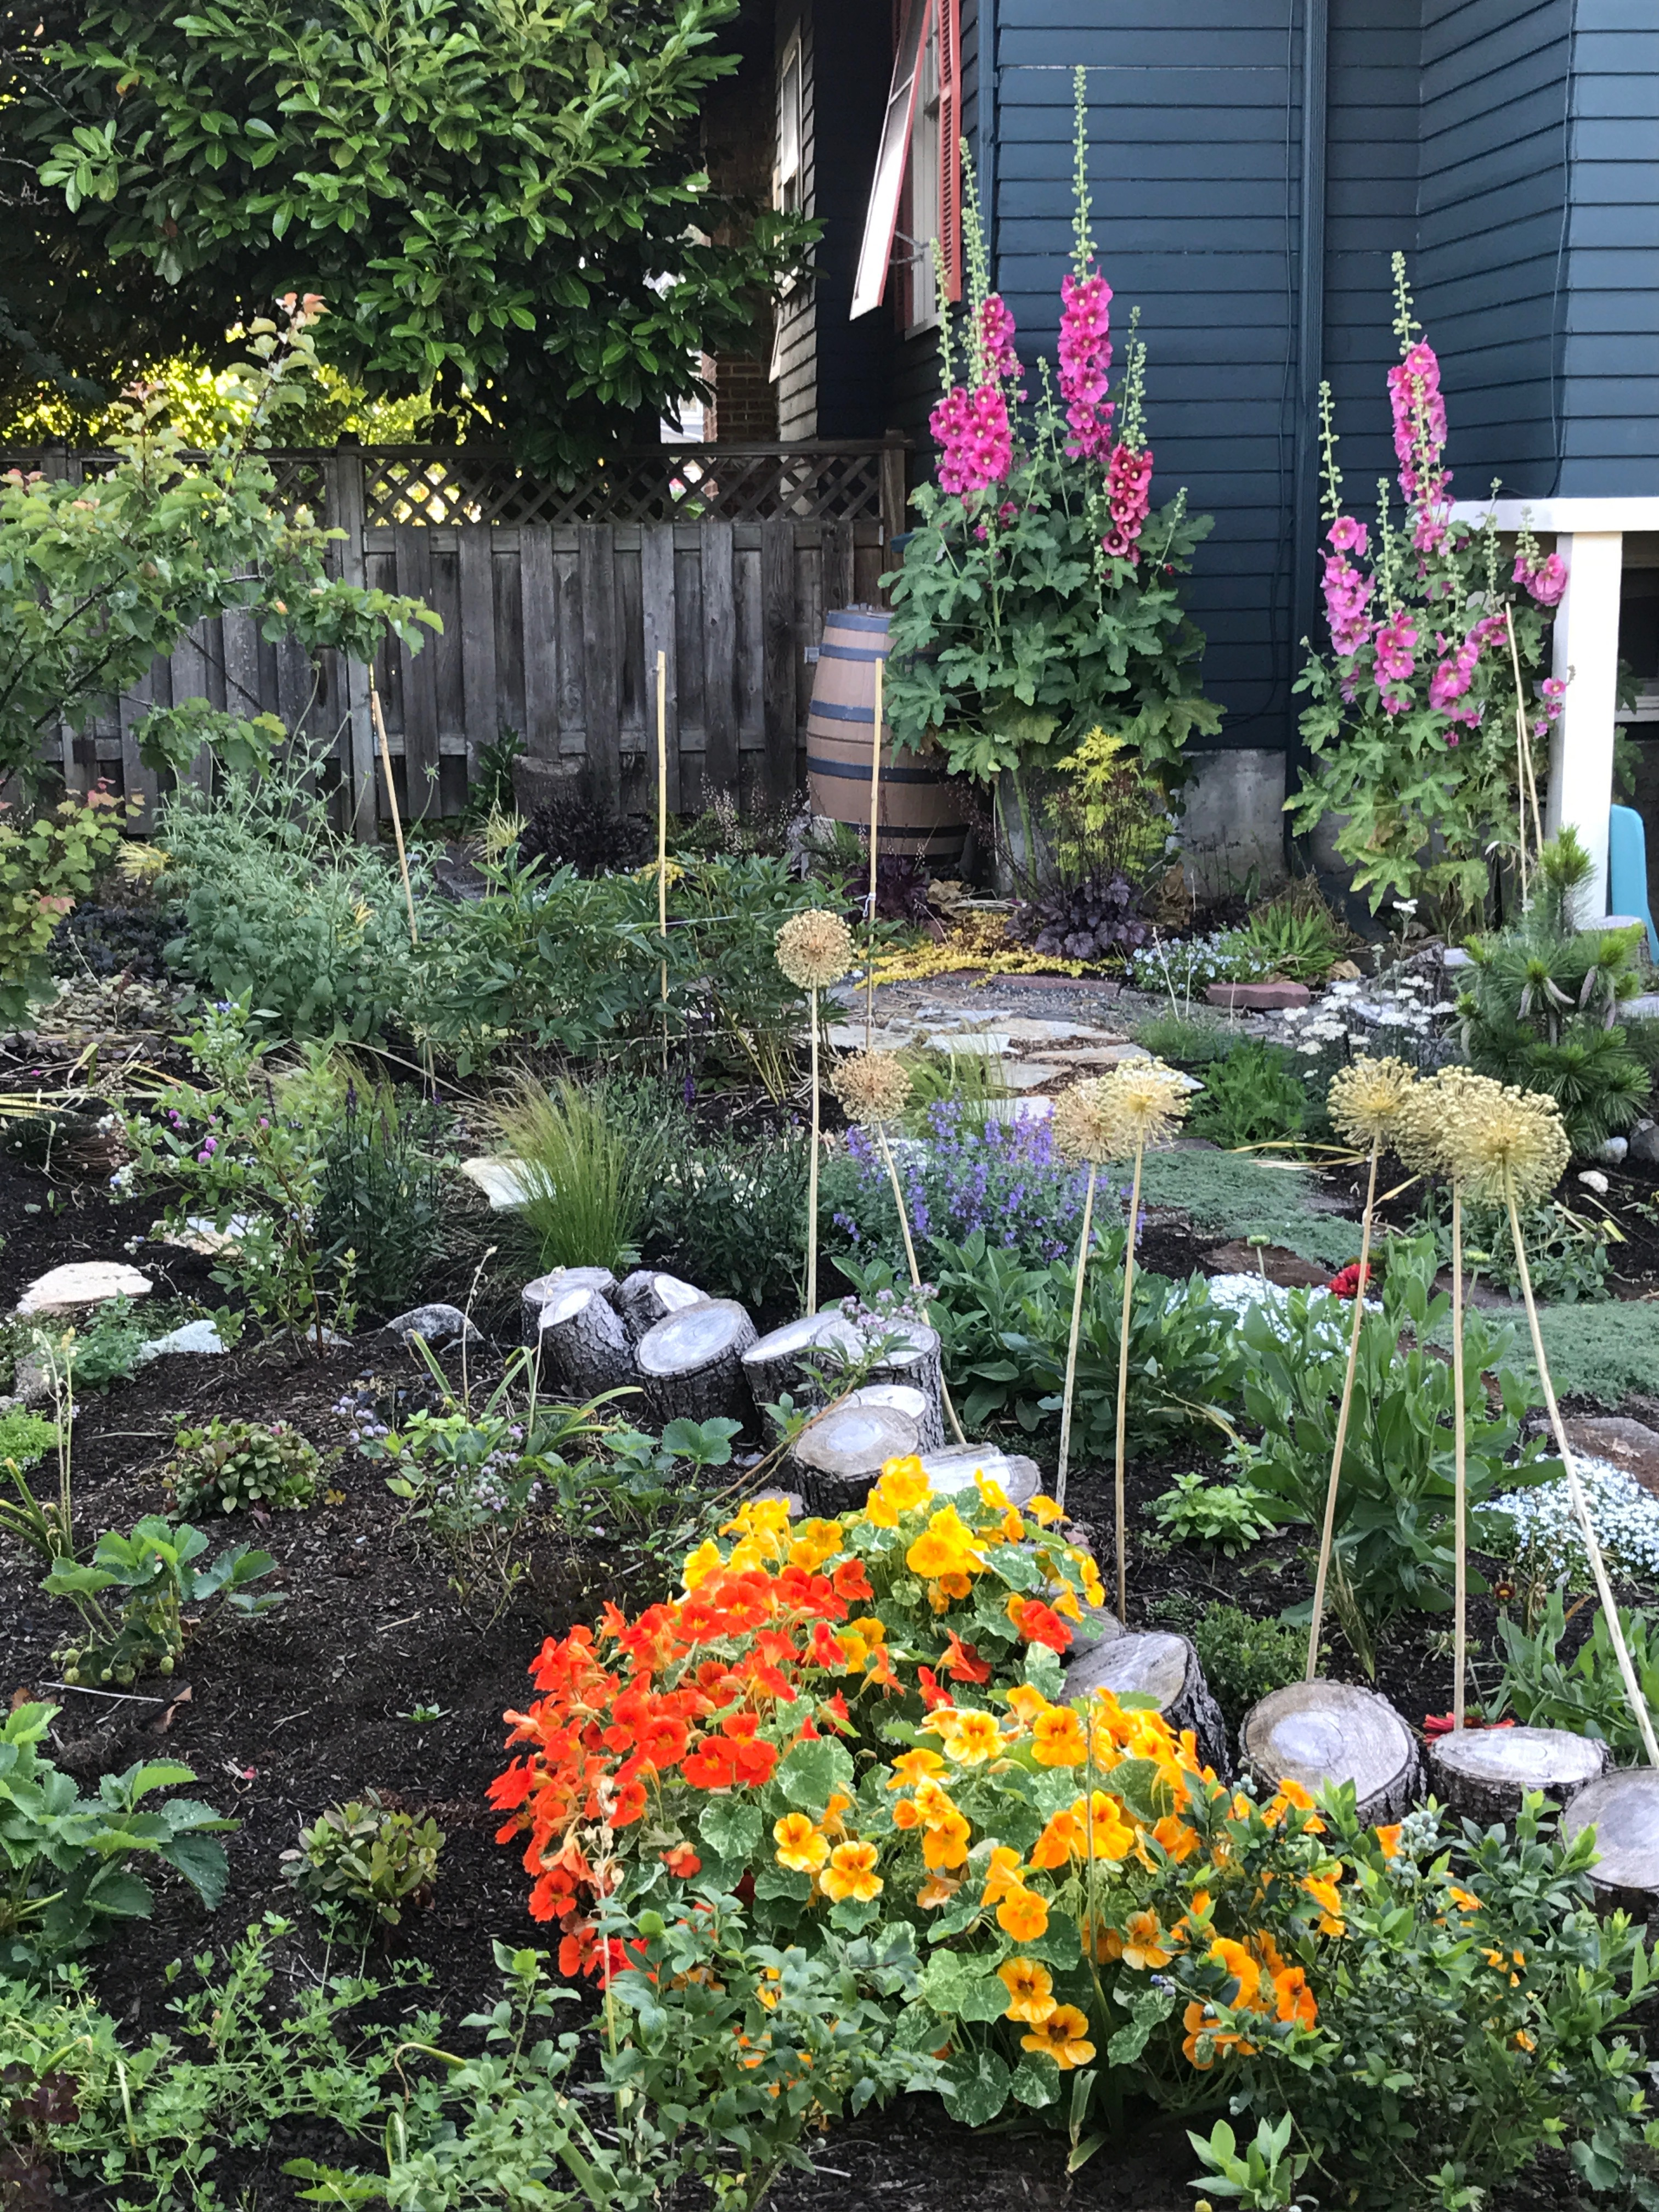 Garden scene: Hollyhocks, nasturtiums, blueberries.